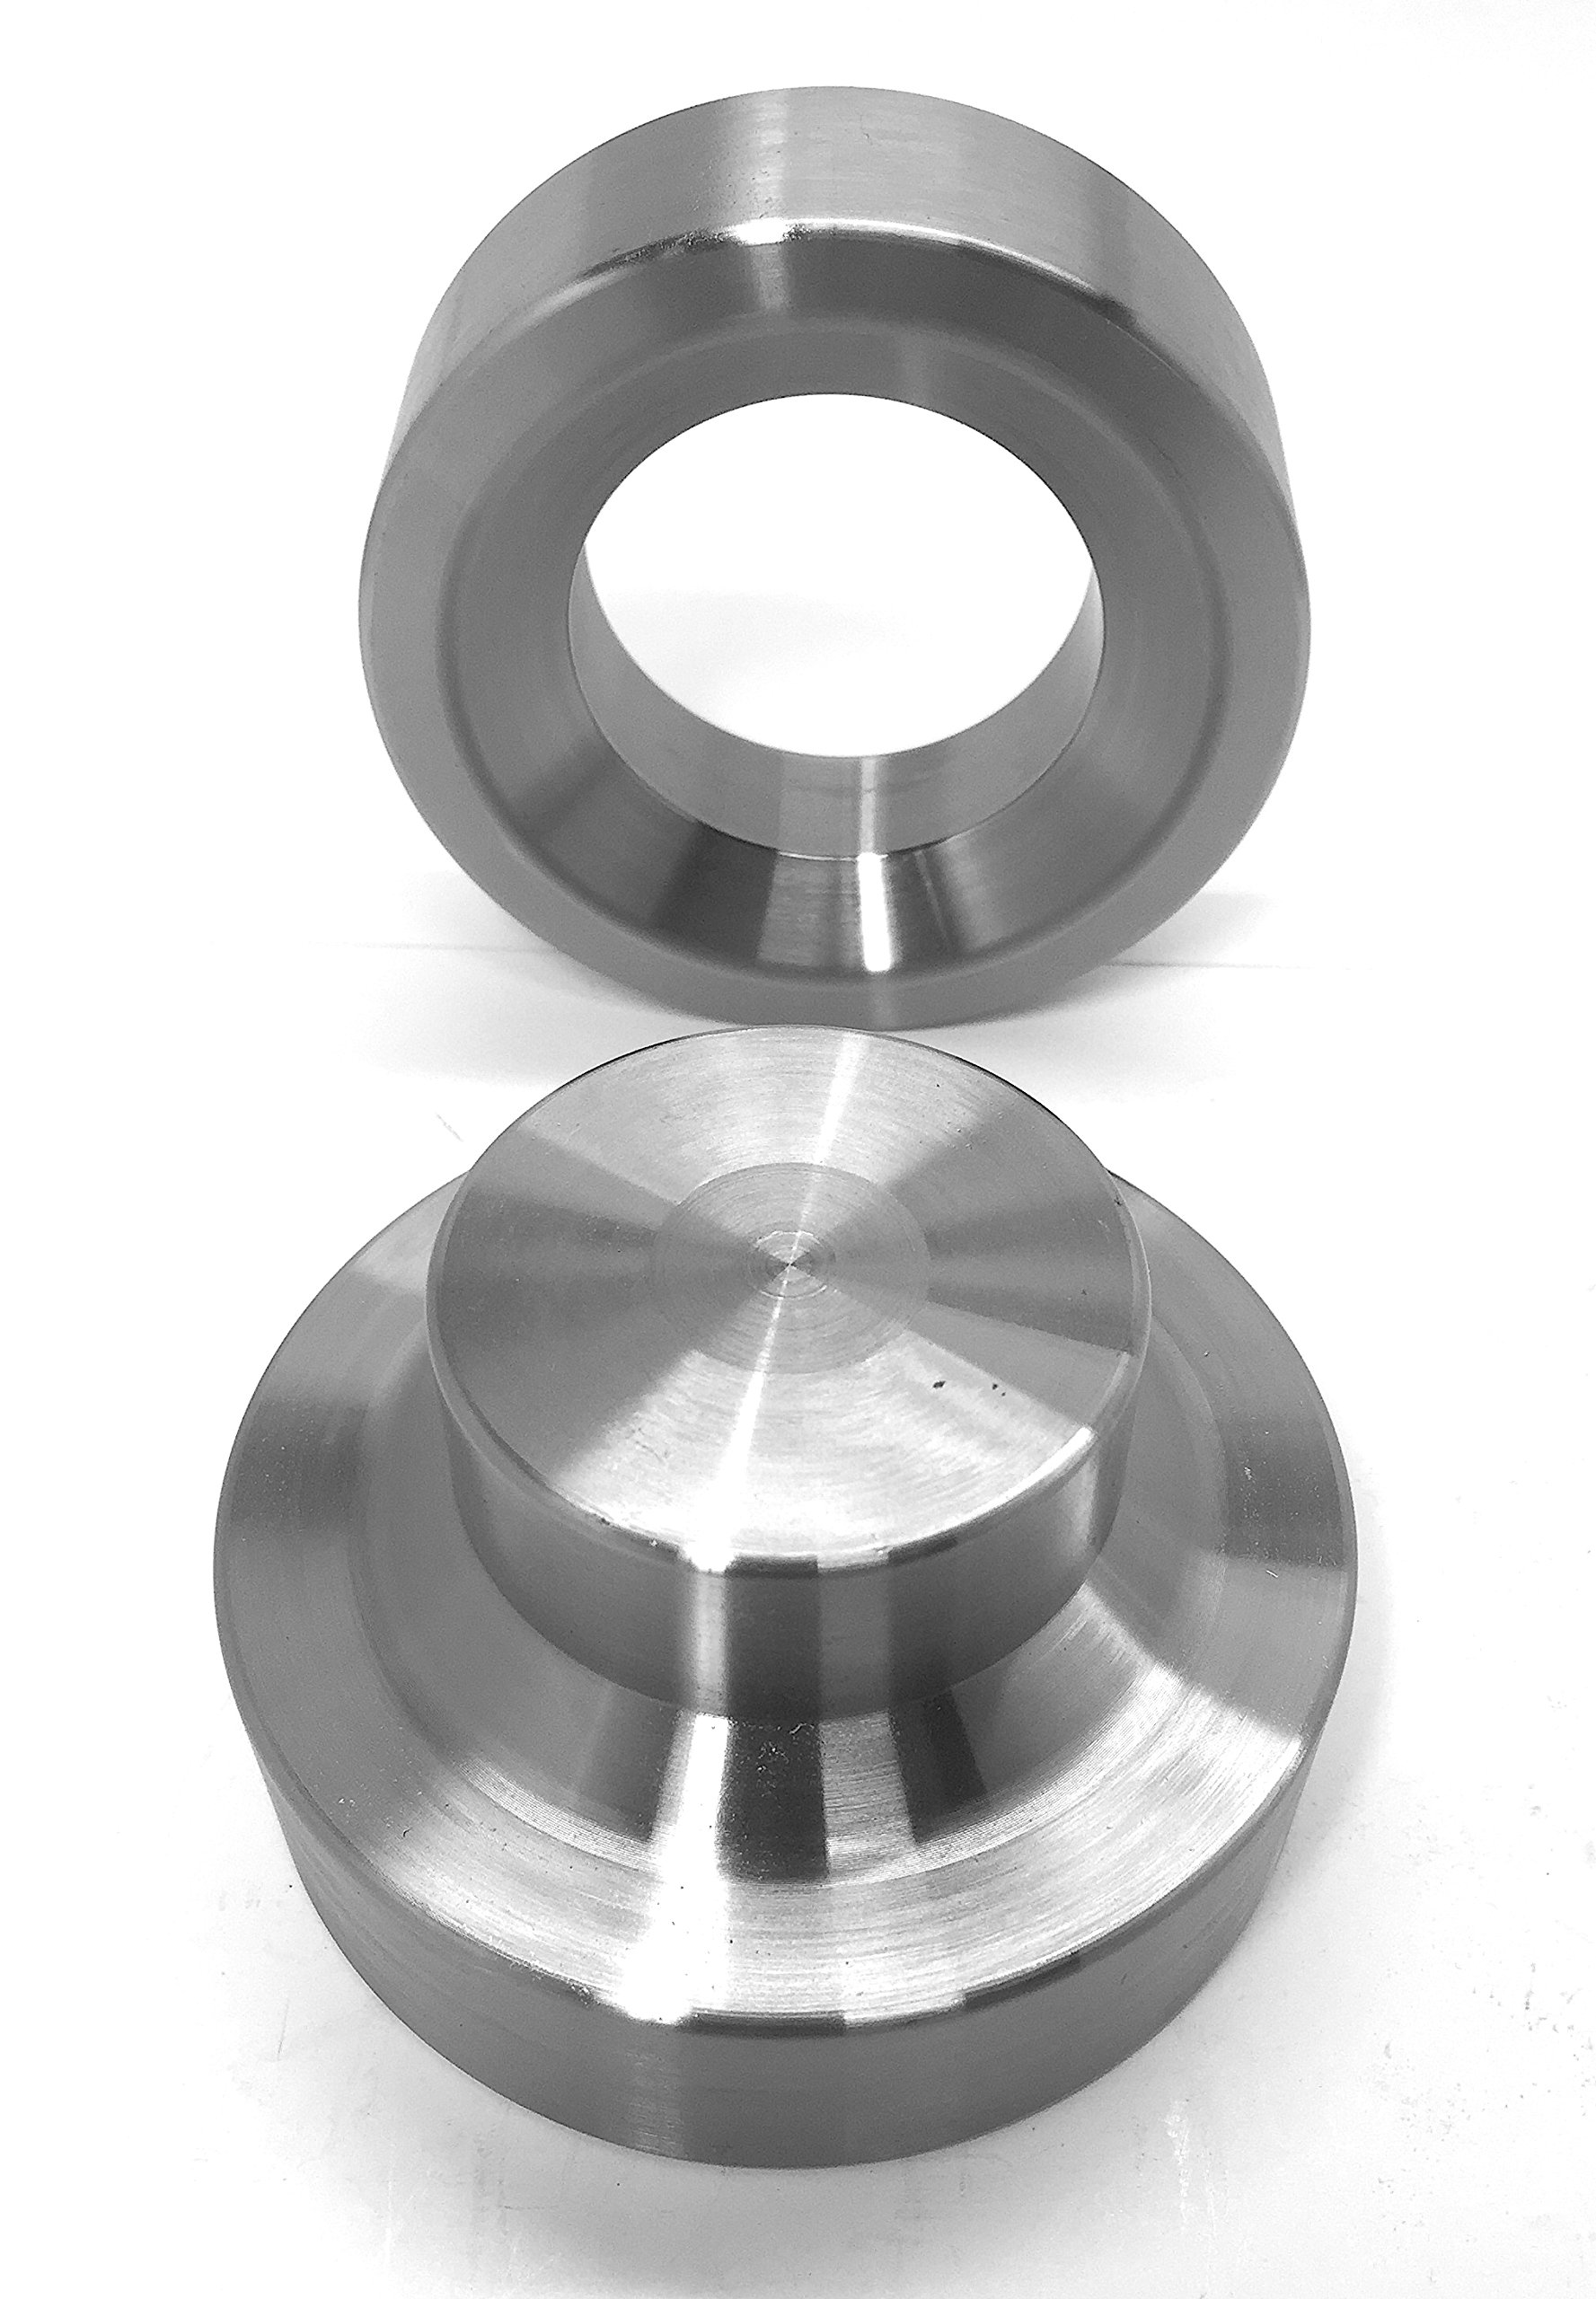 Dimple Dies for metal fabrication, multiple sizes to choose from (2'') by UTVDistribution